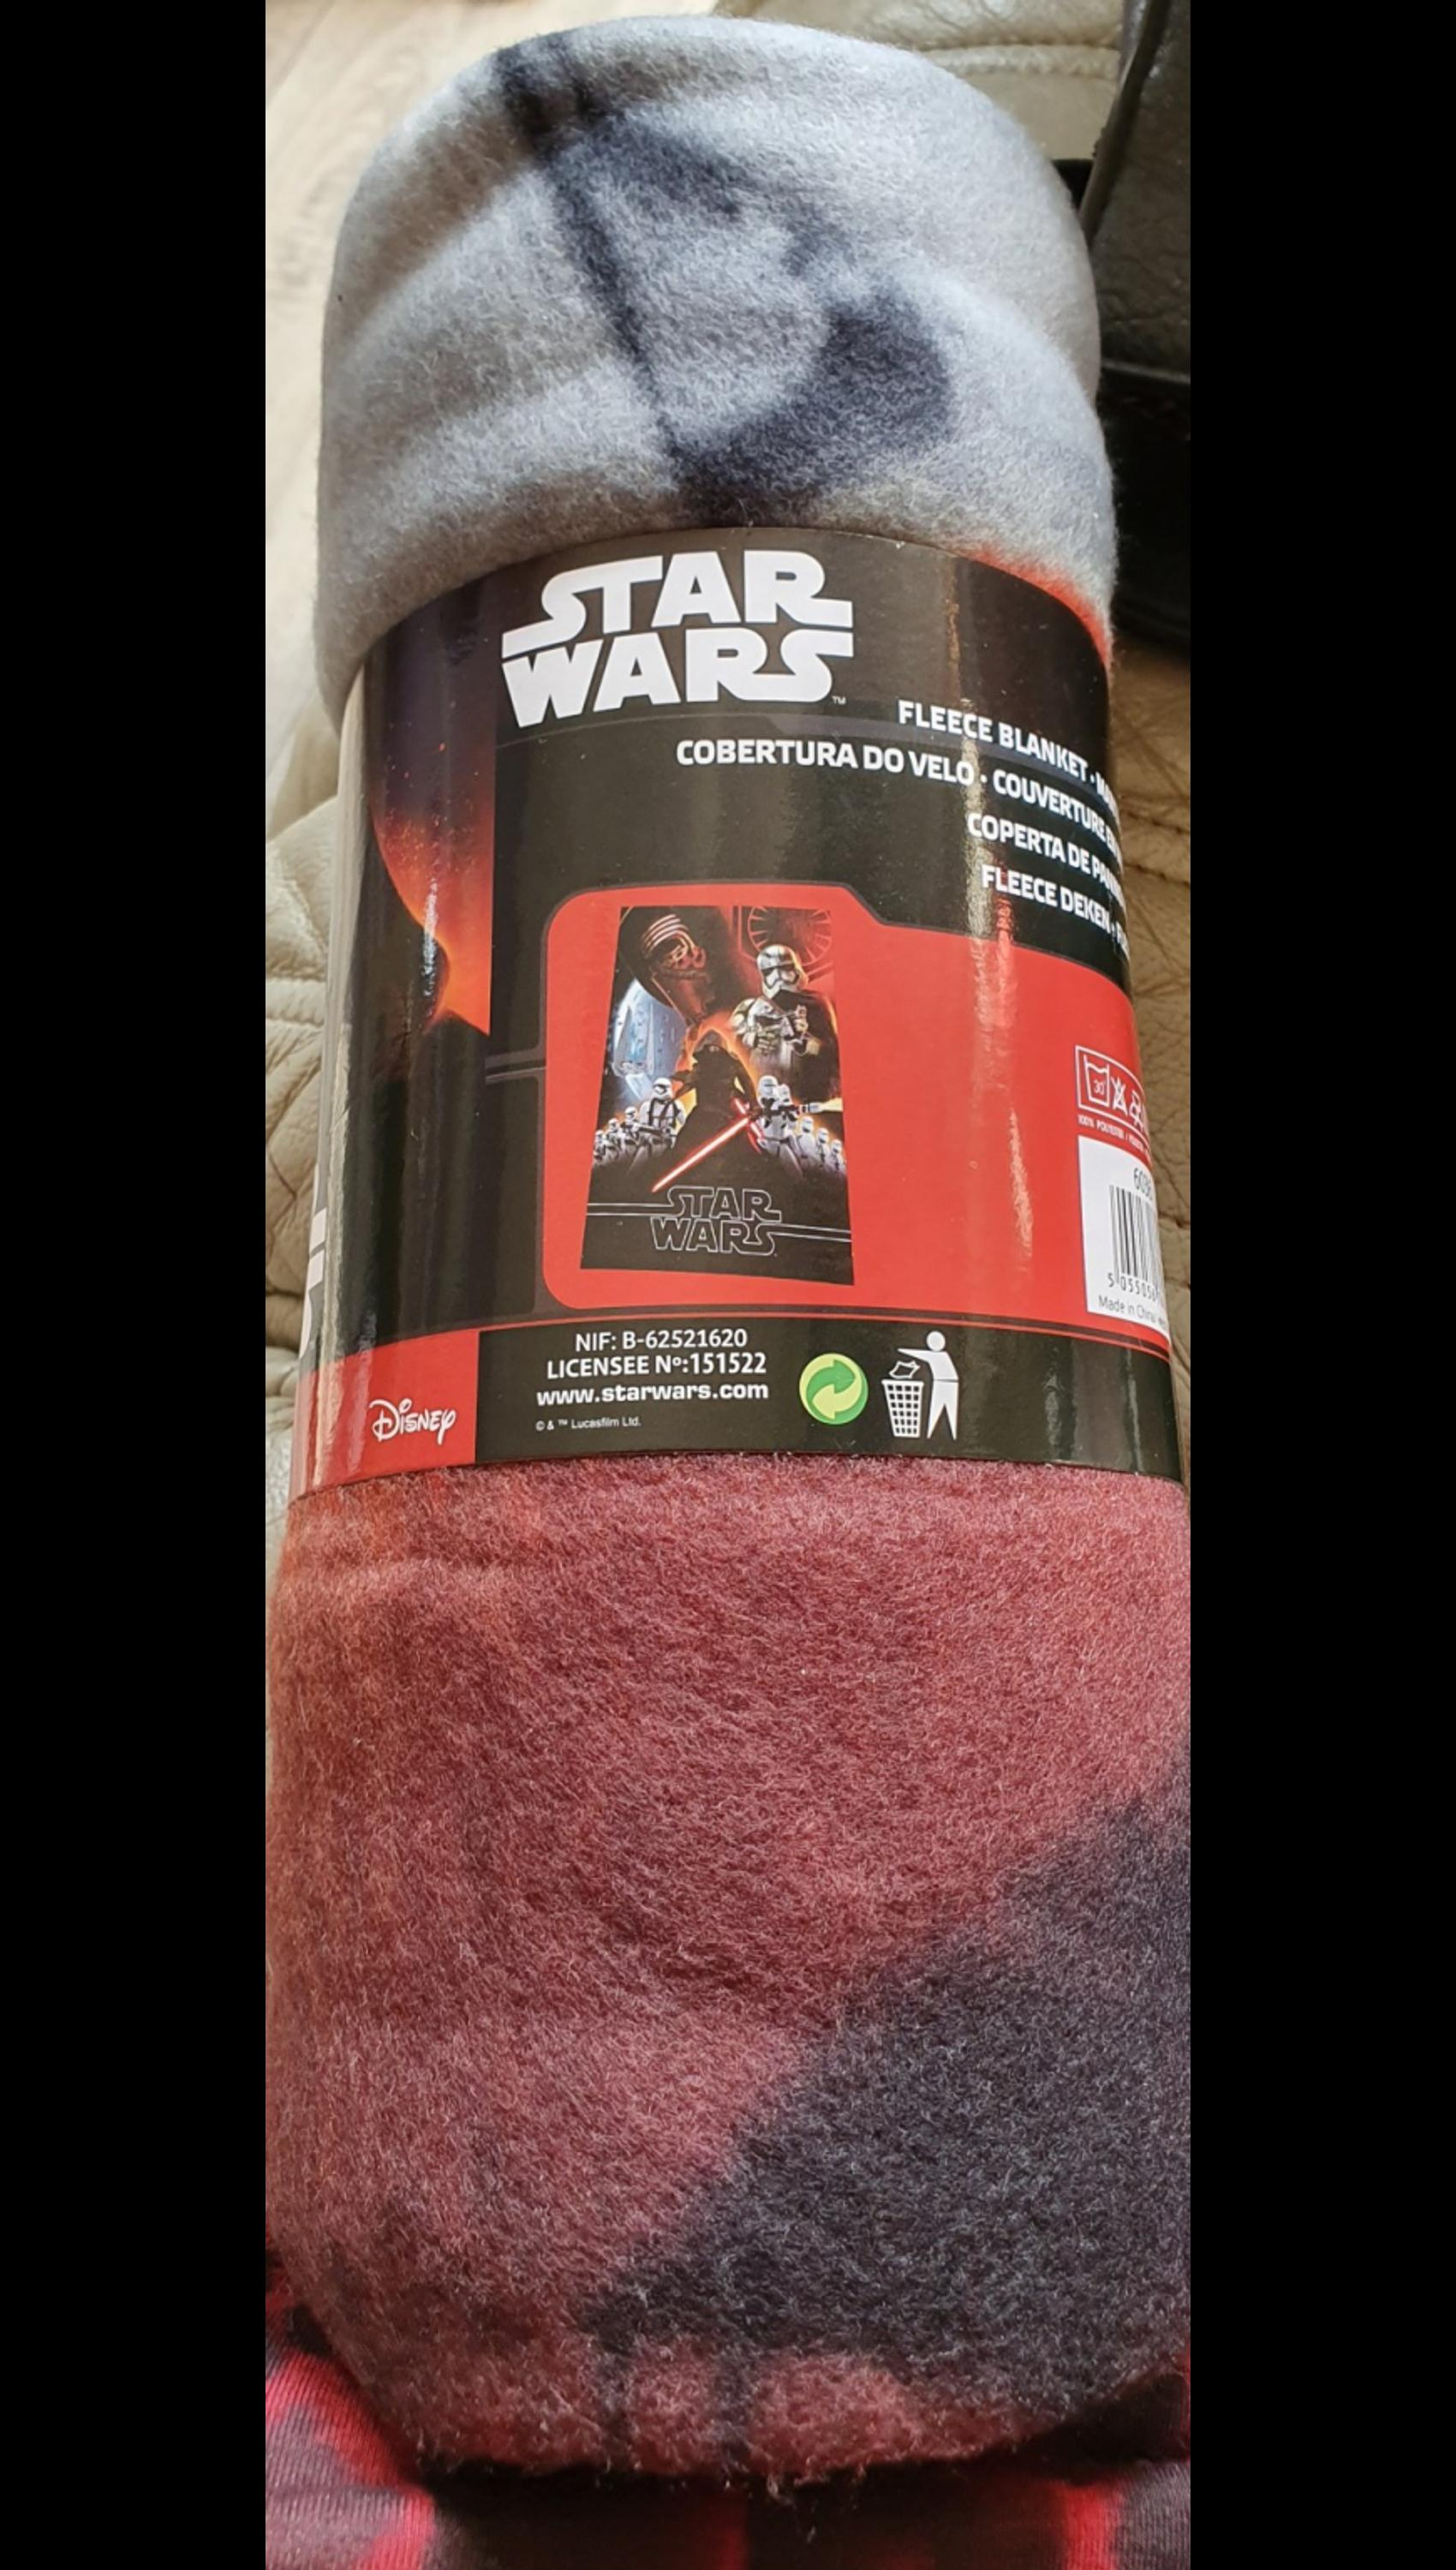 new fleece blanket. collection only from near tunstall at a safe distance